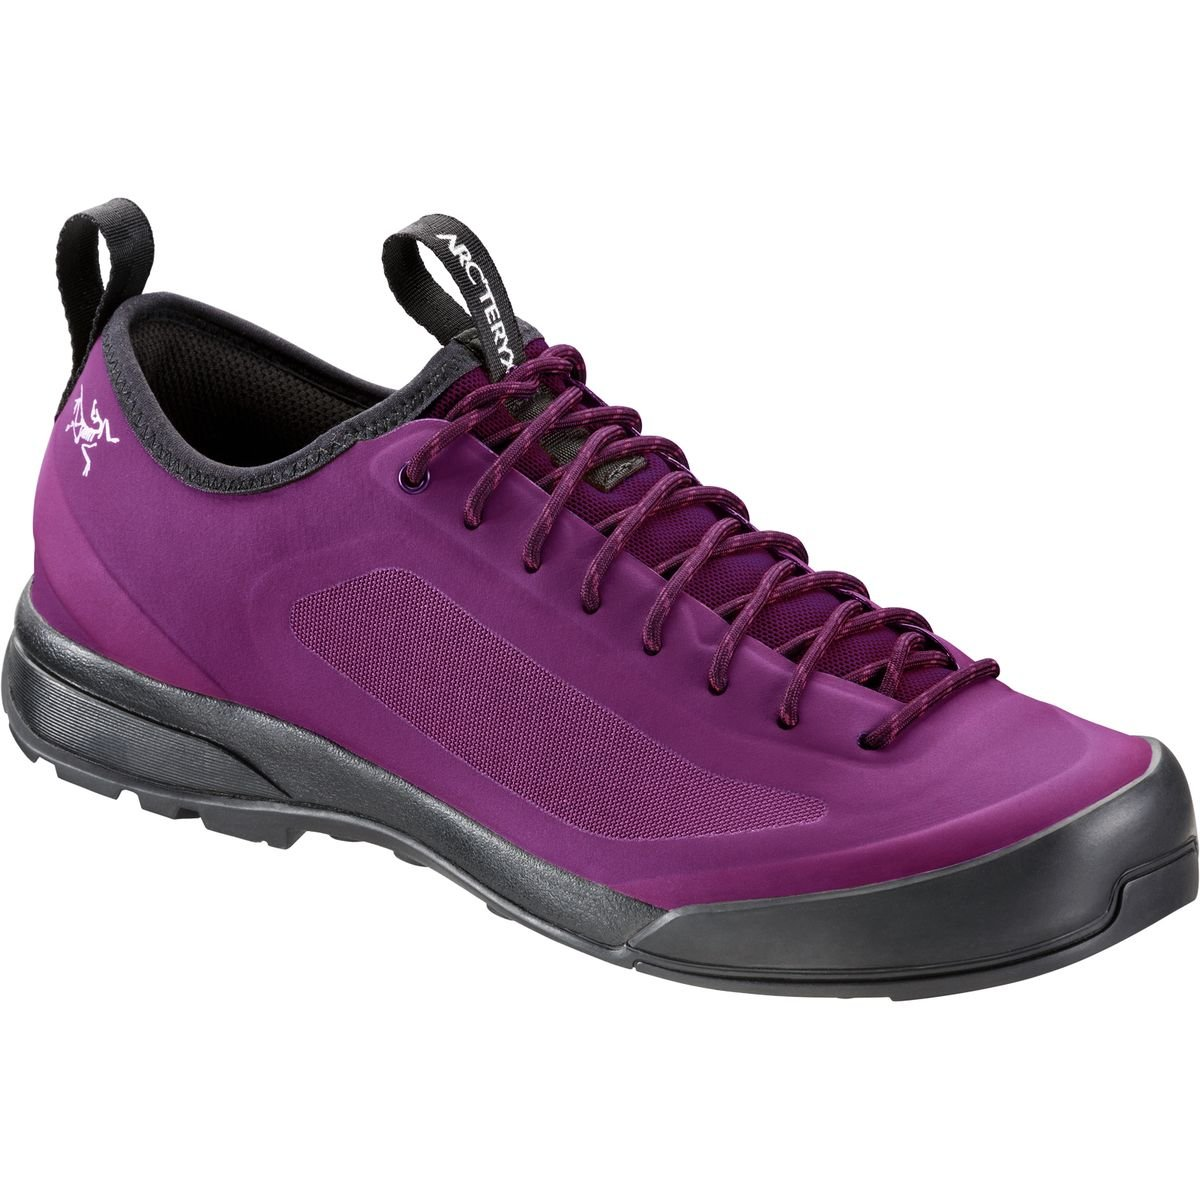 Arc'teryx Acrux SL Approach Shoes - Women's B01GFEYOR4 9.5 B(M) US|Orion/Nebula